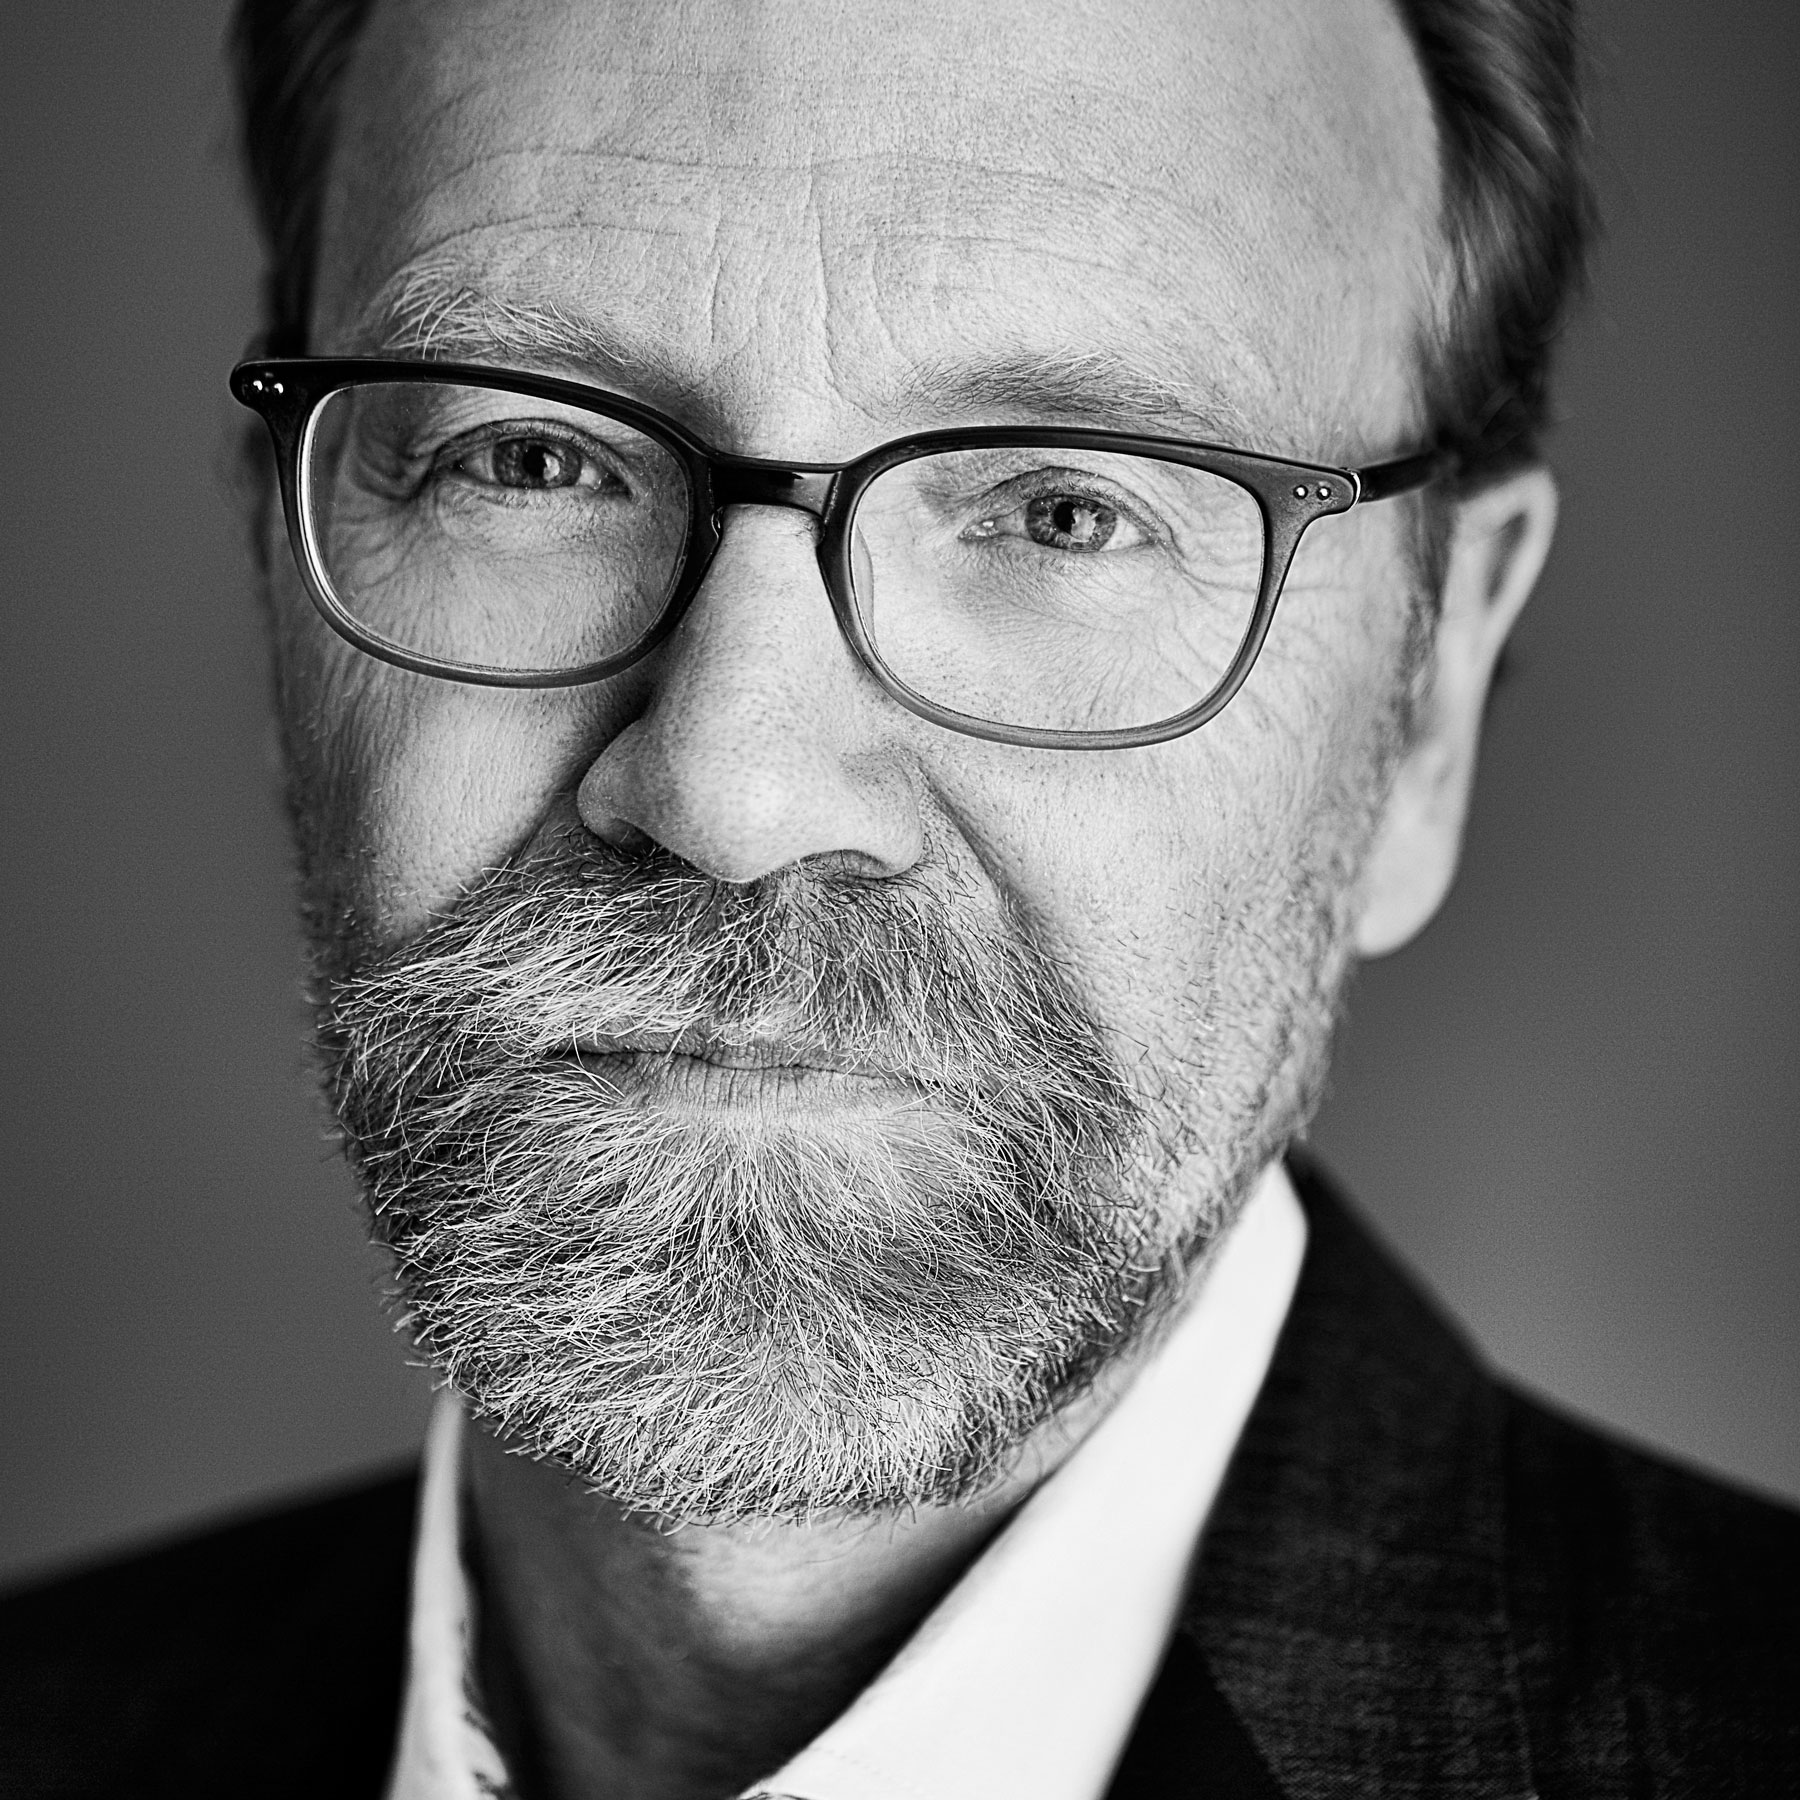 Behind the scenes with Michel Leroy and George Saunders